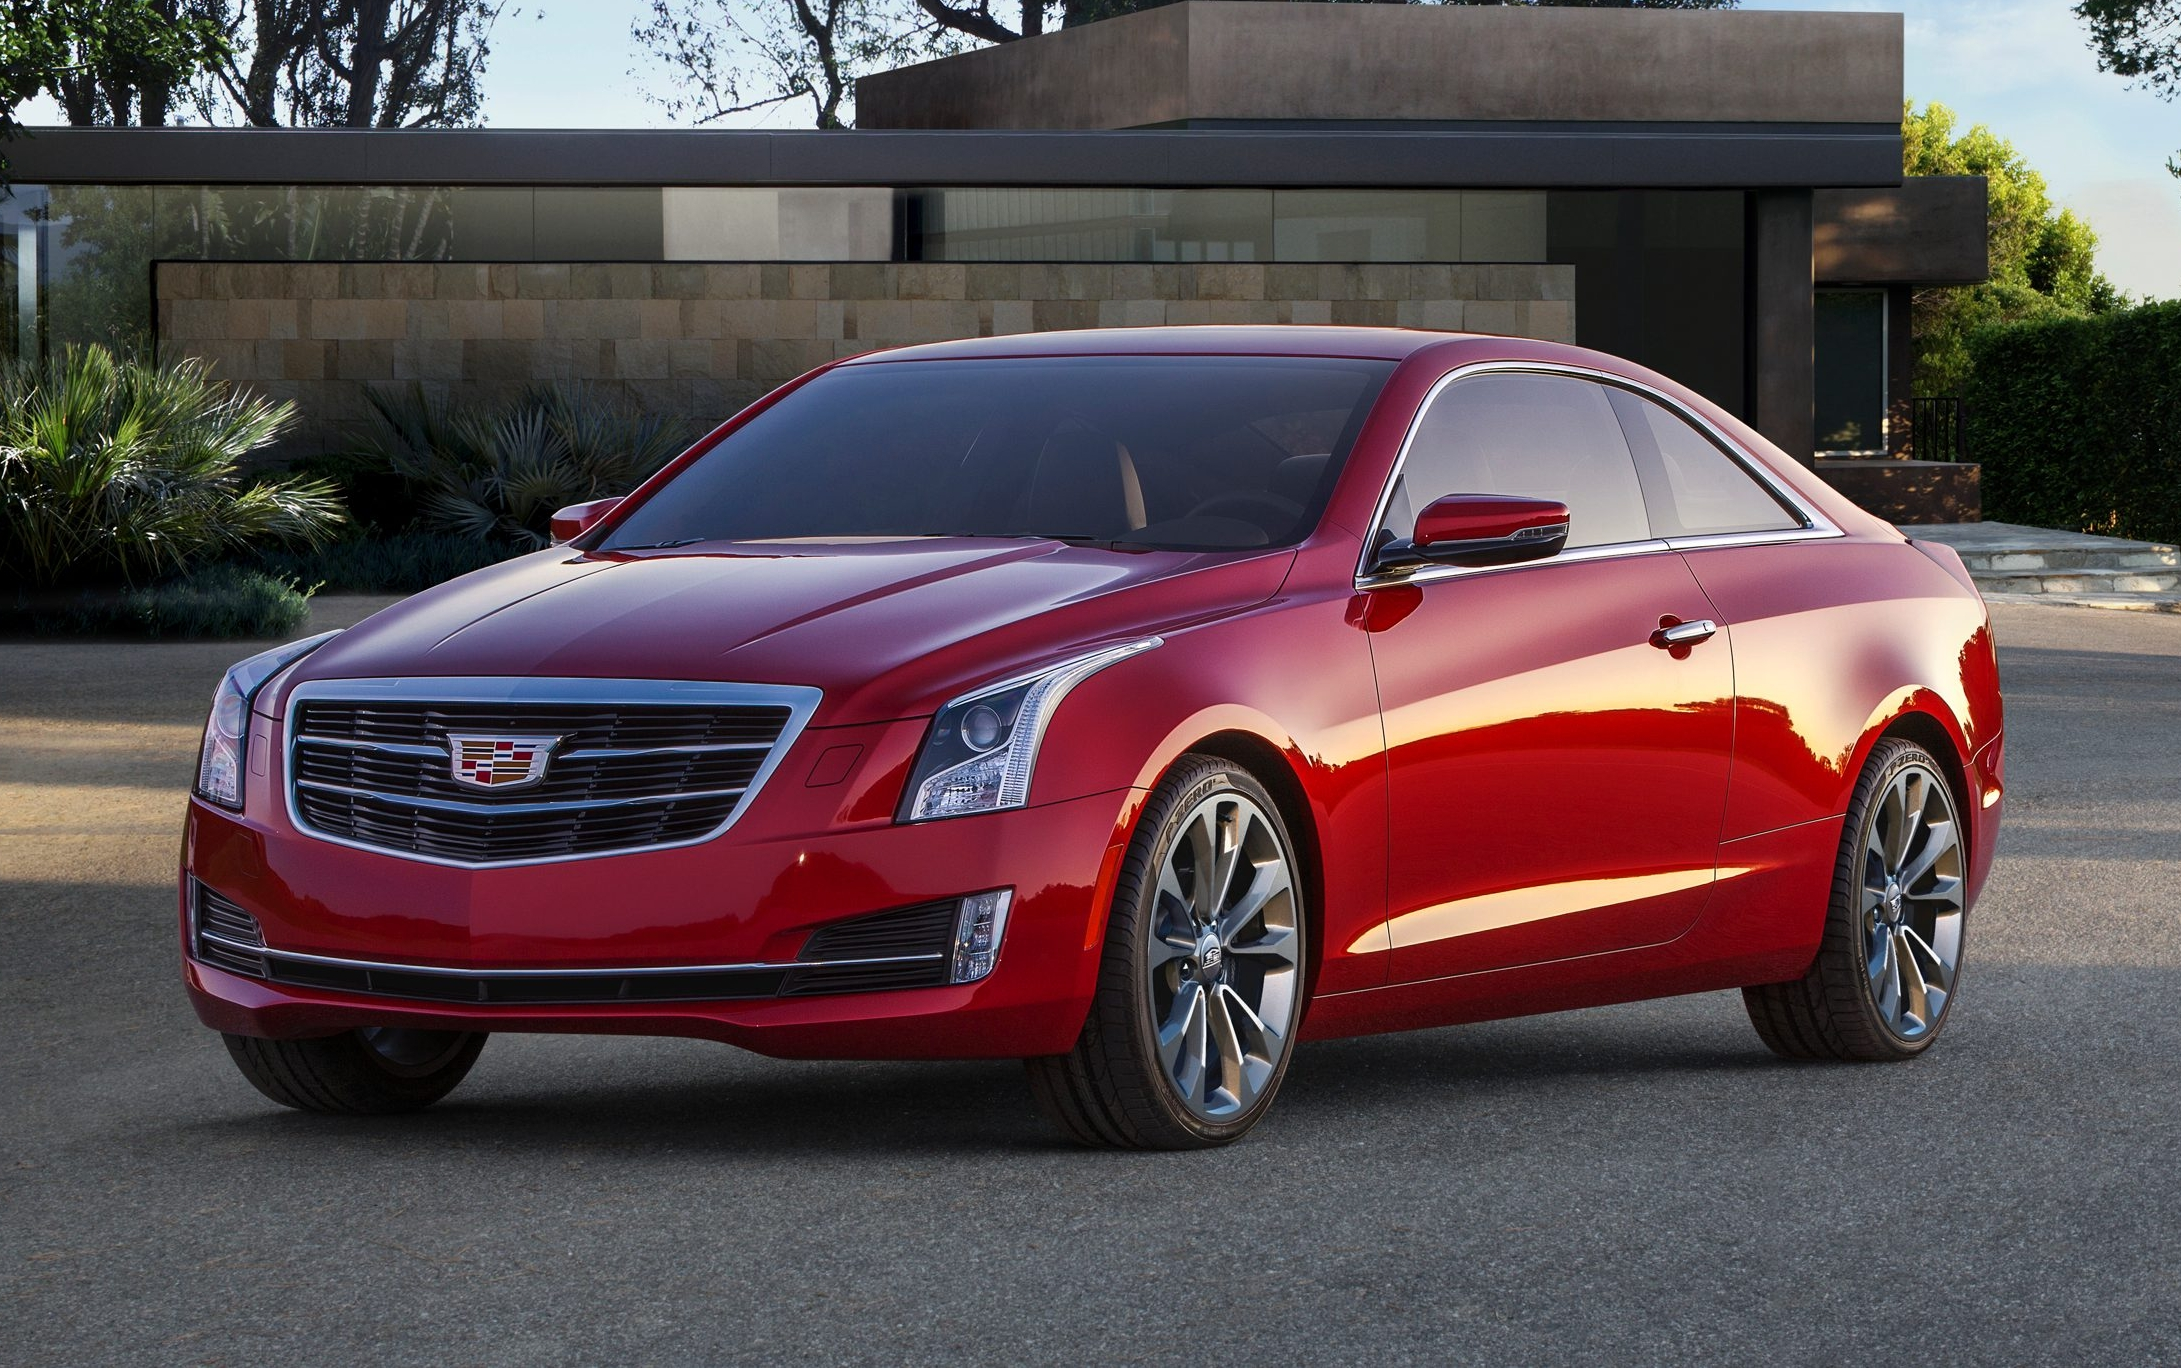 Cadillac Introduces 2015 ATS Coupe